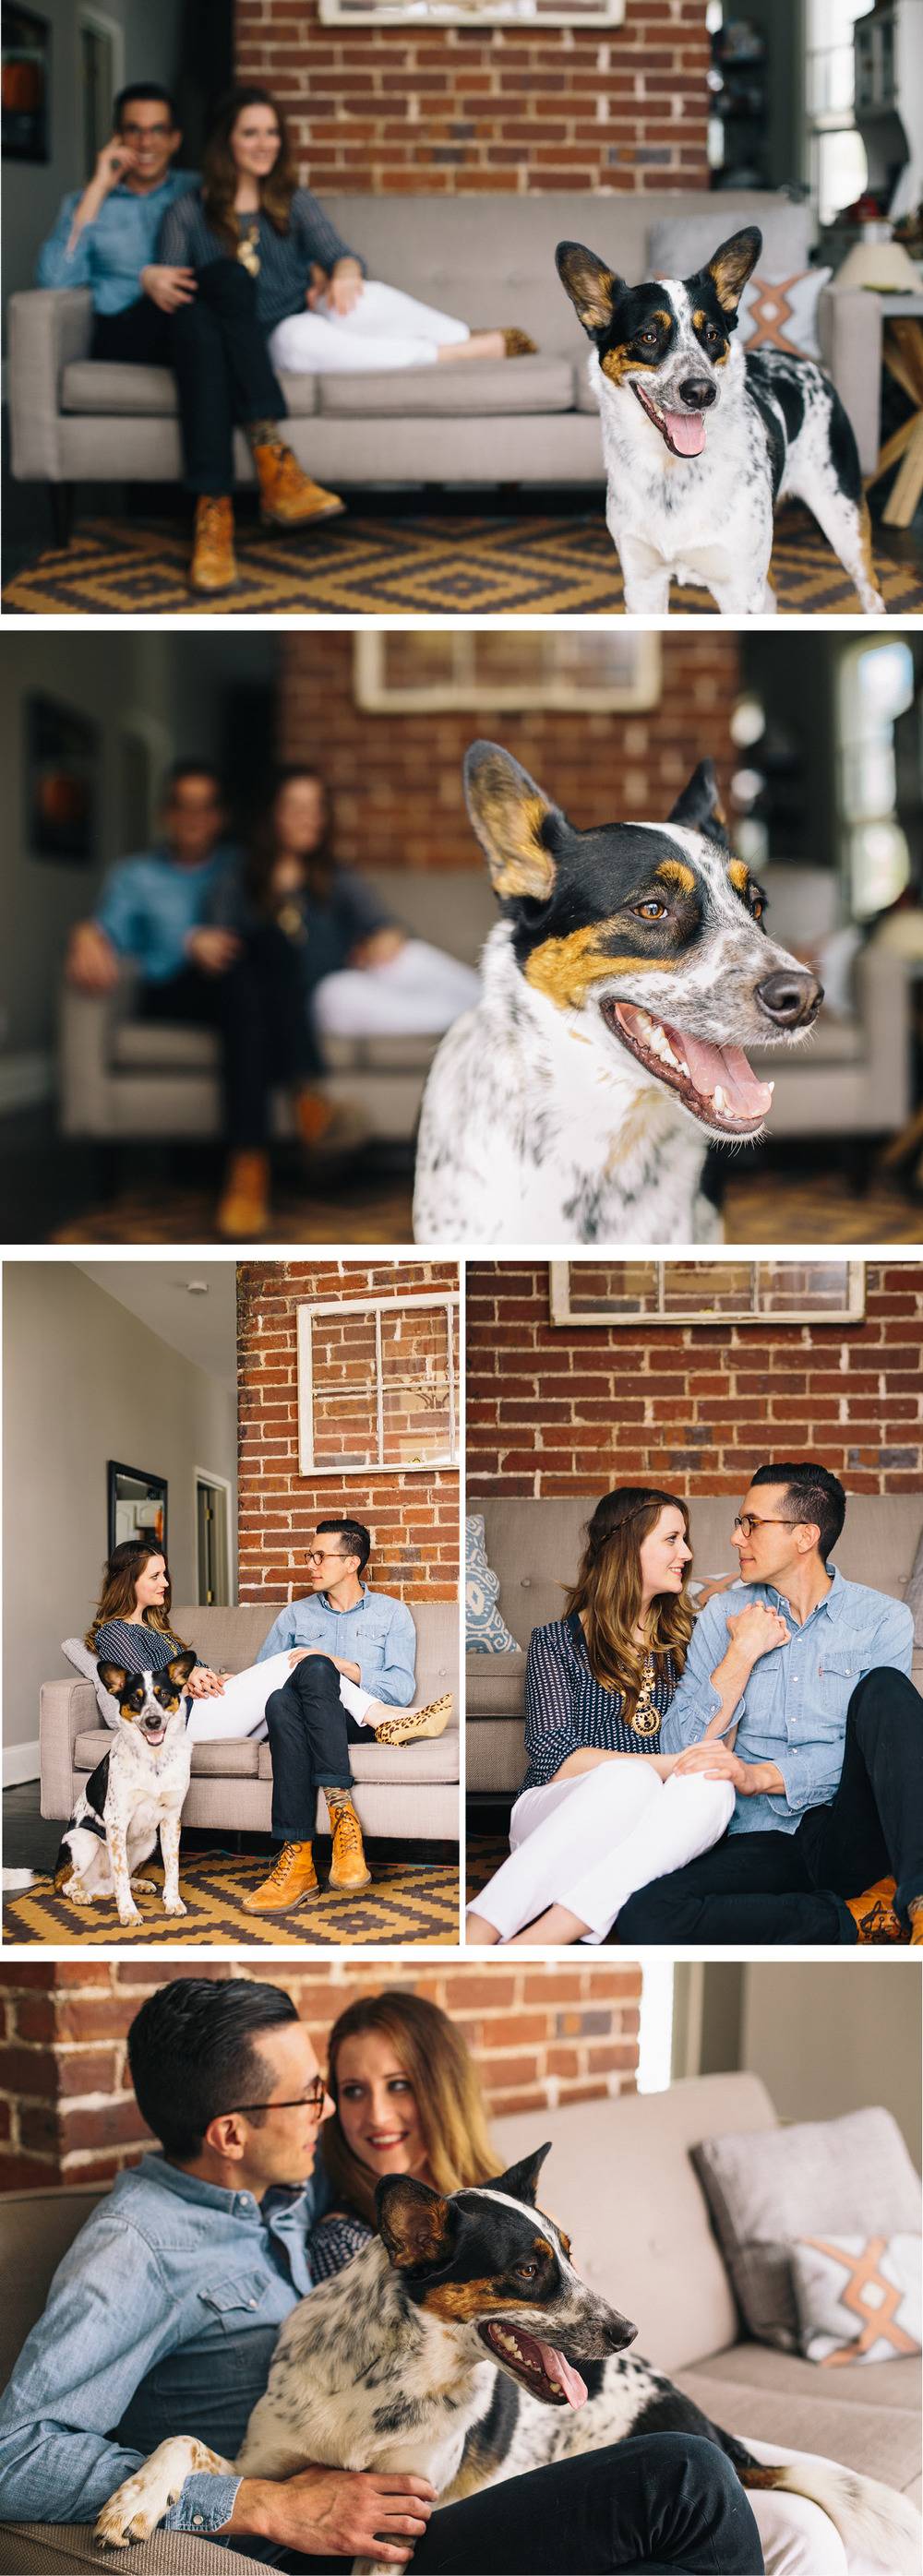 CK-Photo-Nashville-Wedding-engagement-Photographer-MB4.jpg